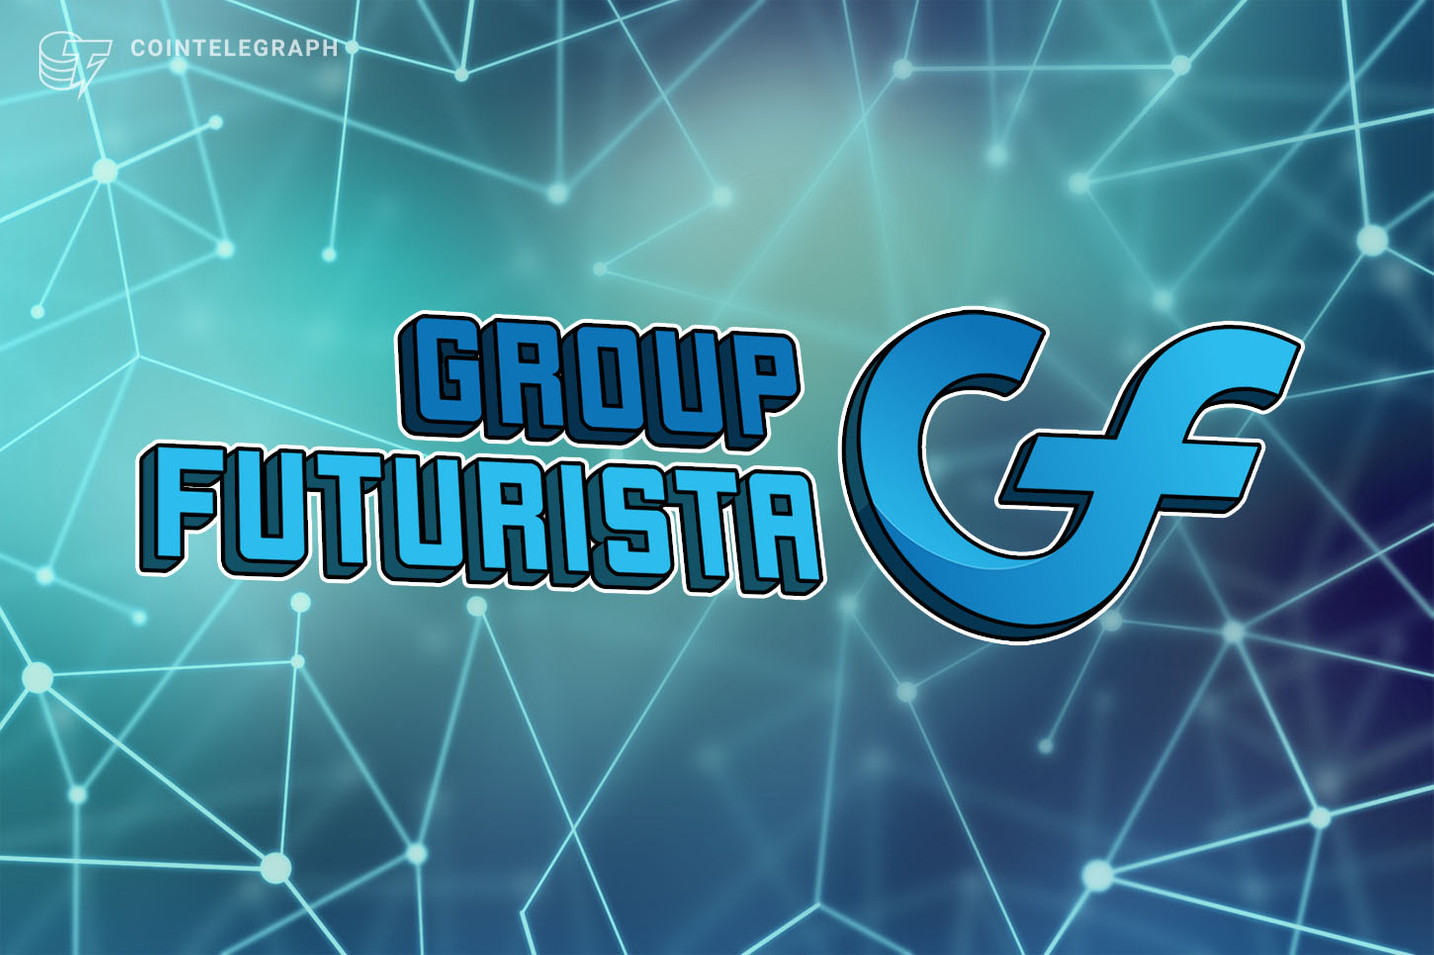 Group Futurista's next webinar on 24th September